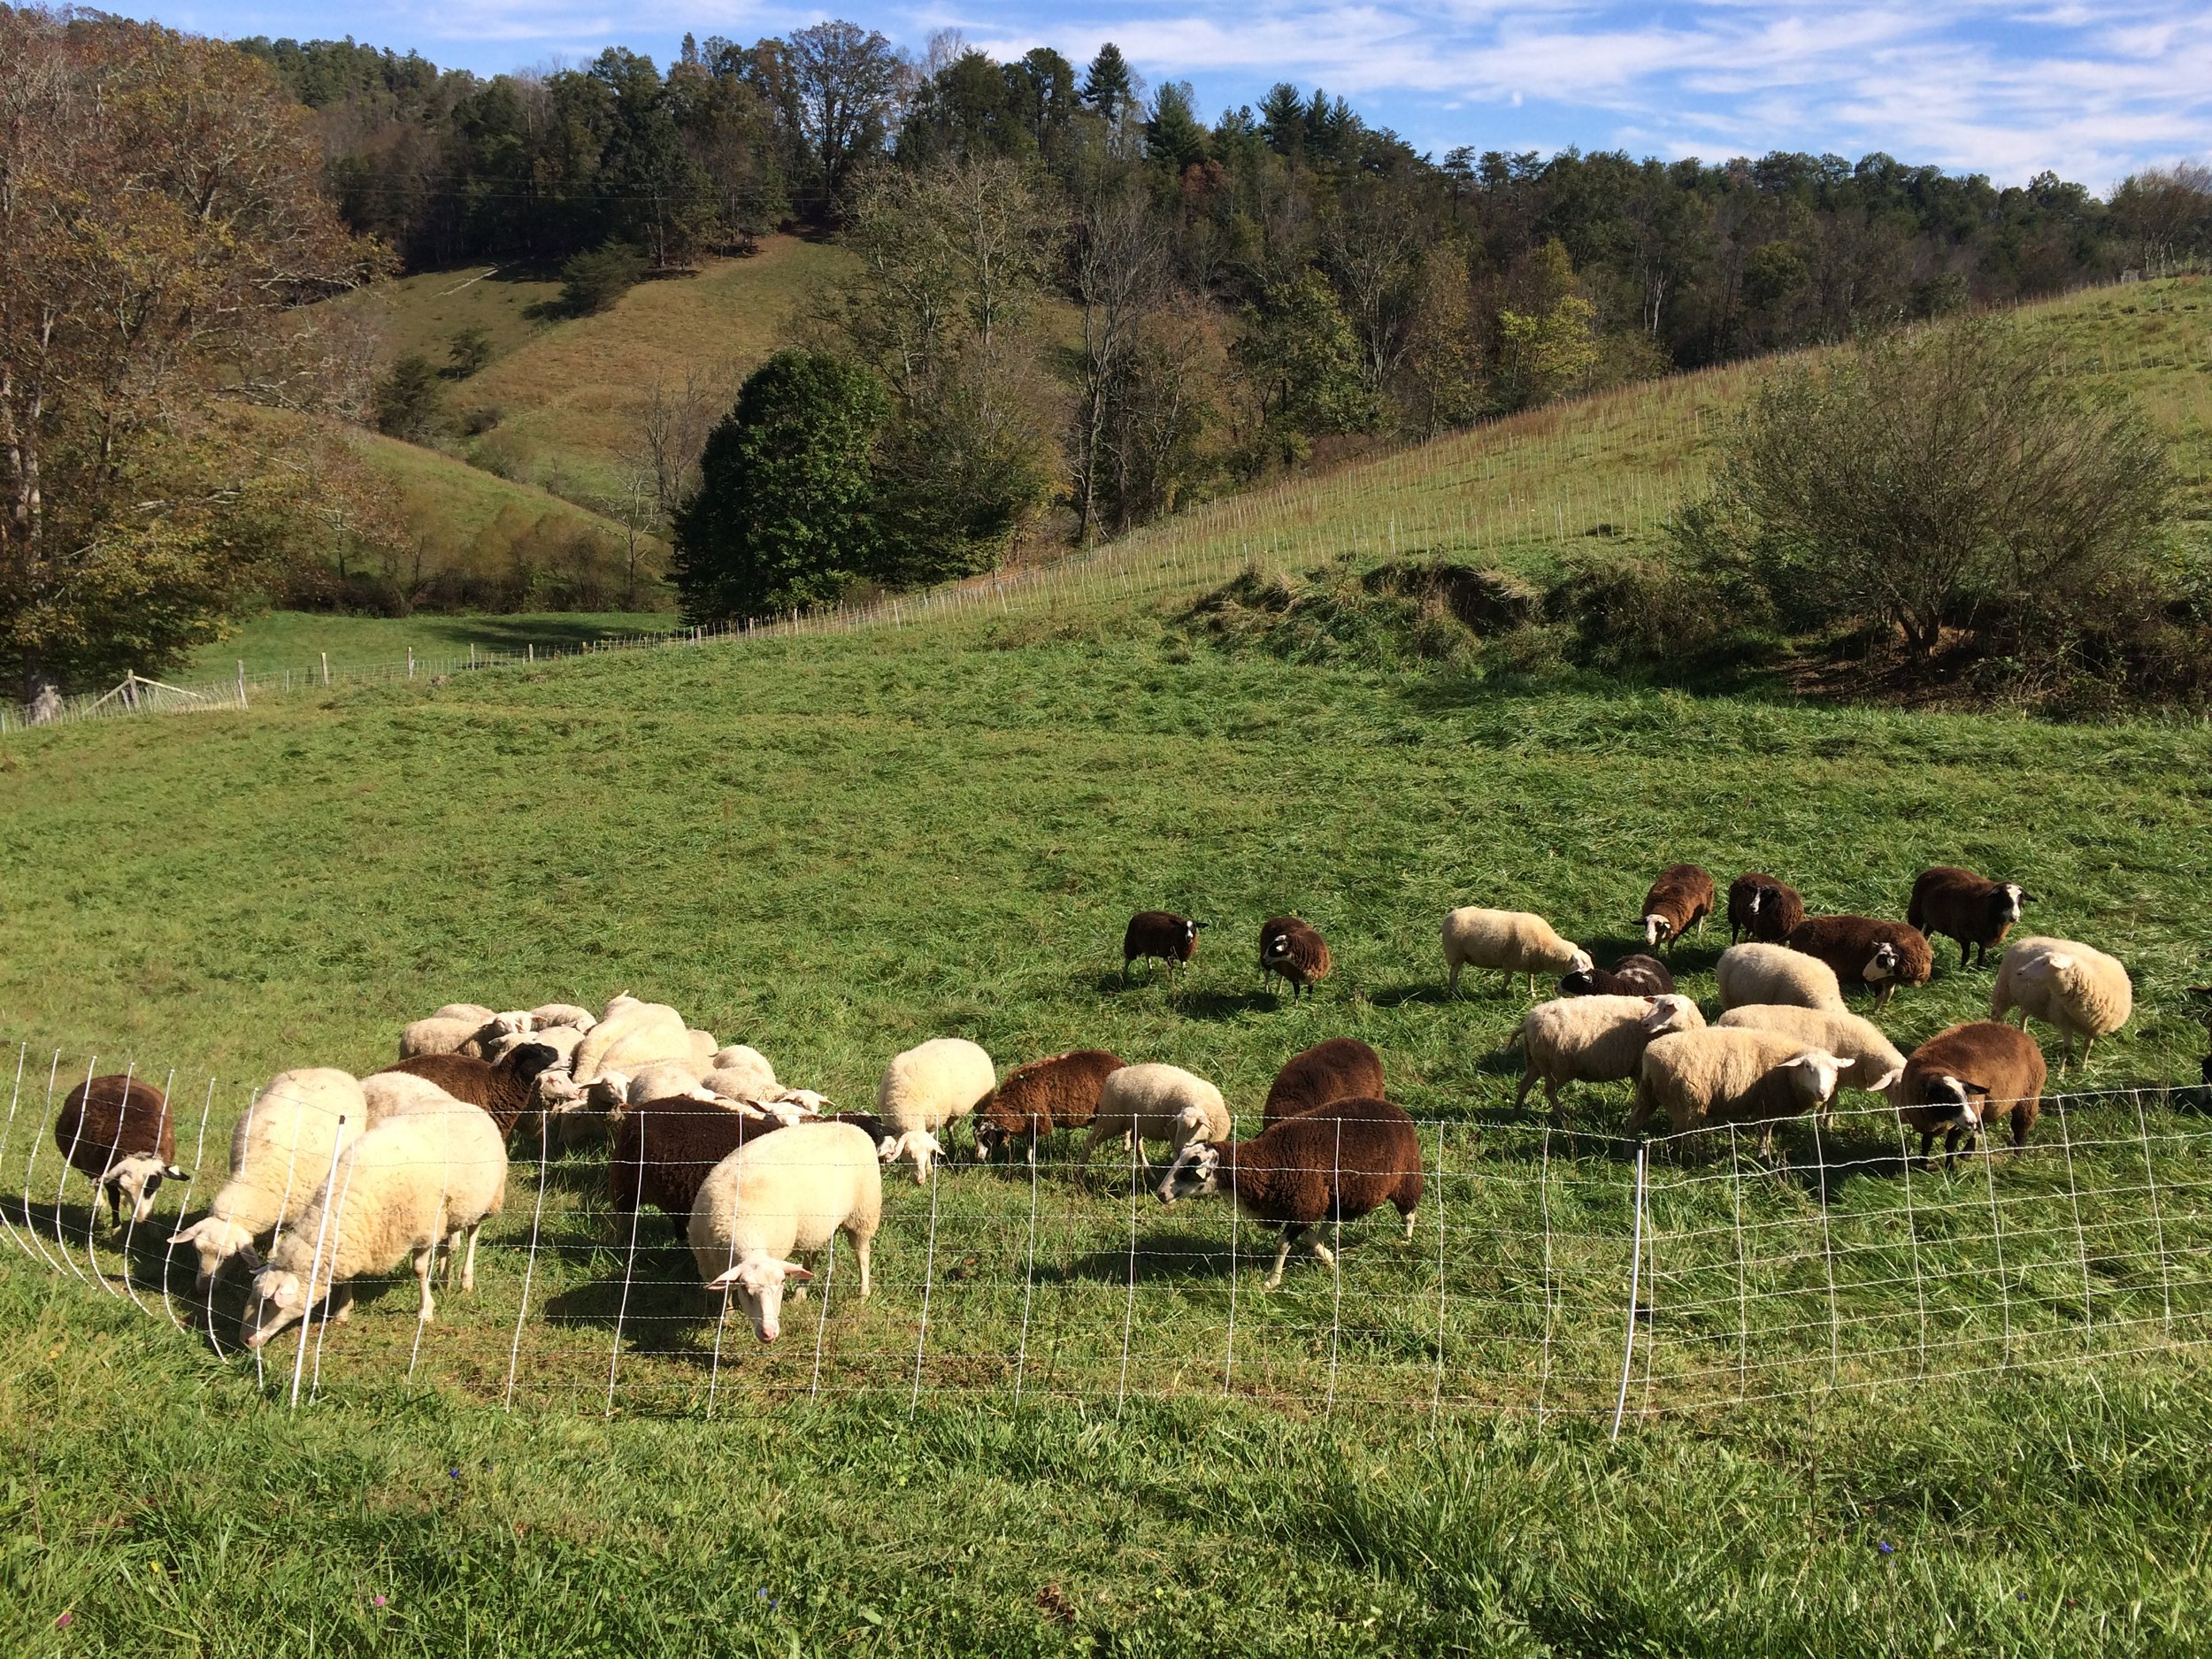 ewes on hill.JPG